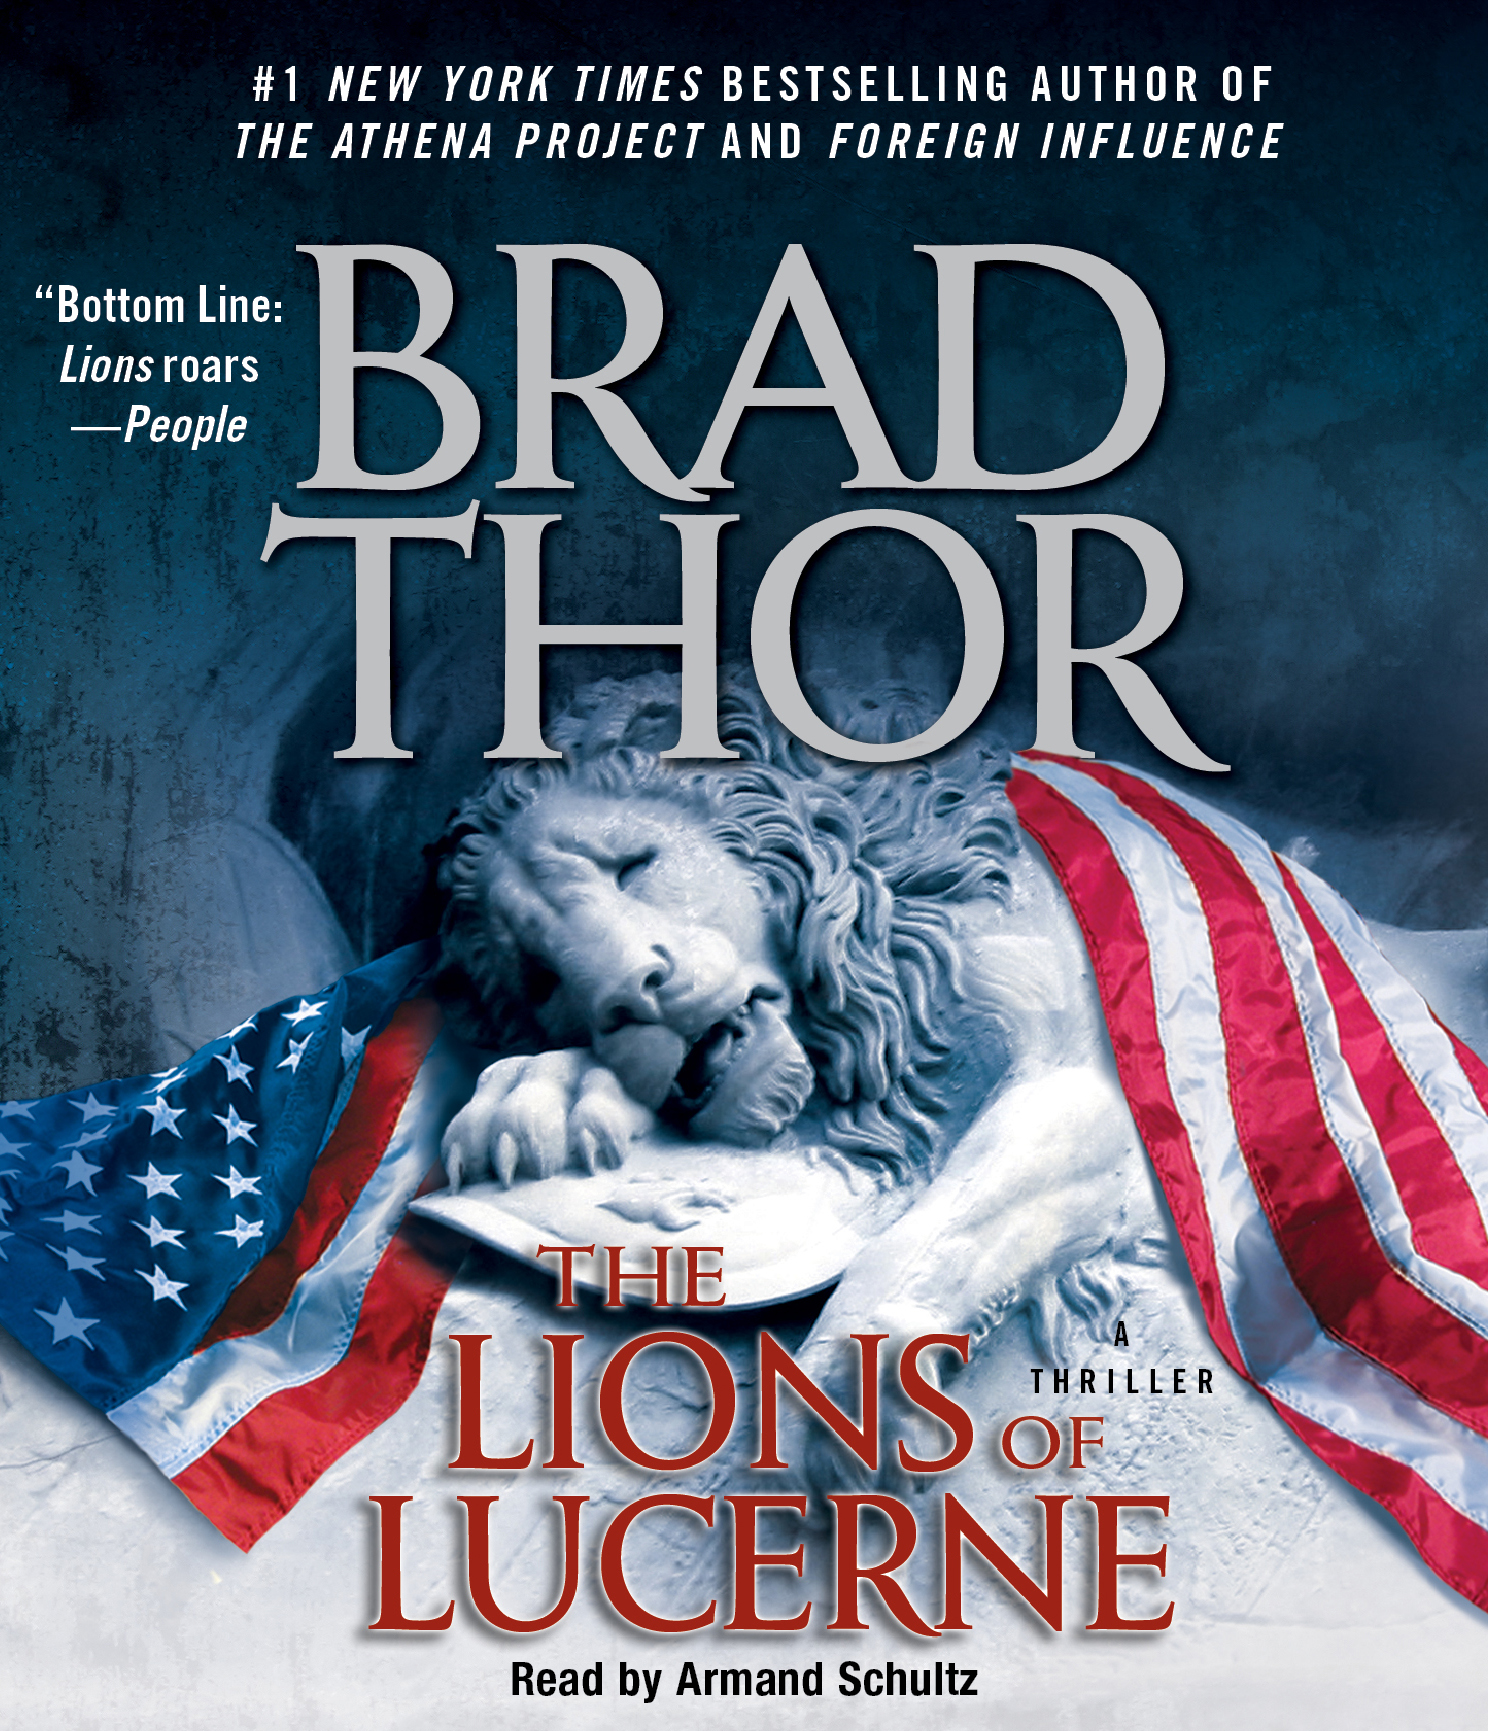 Book Cover Image (jpg): The Lions Of Lucerne